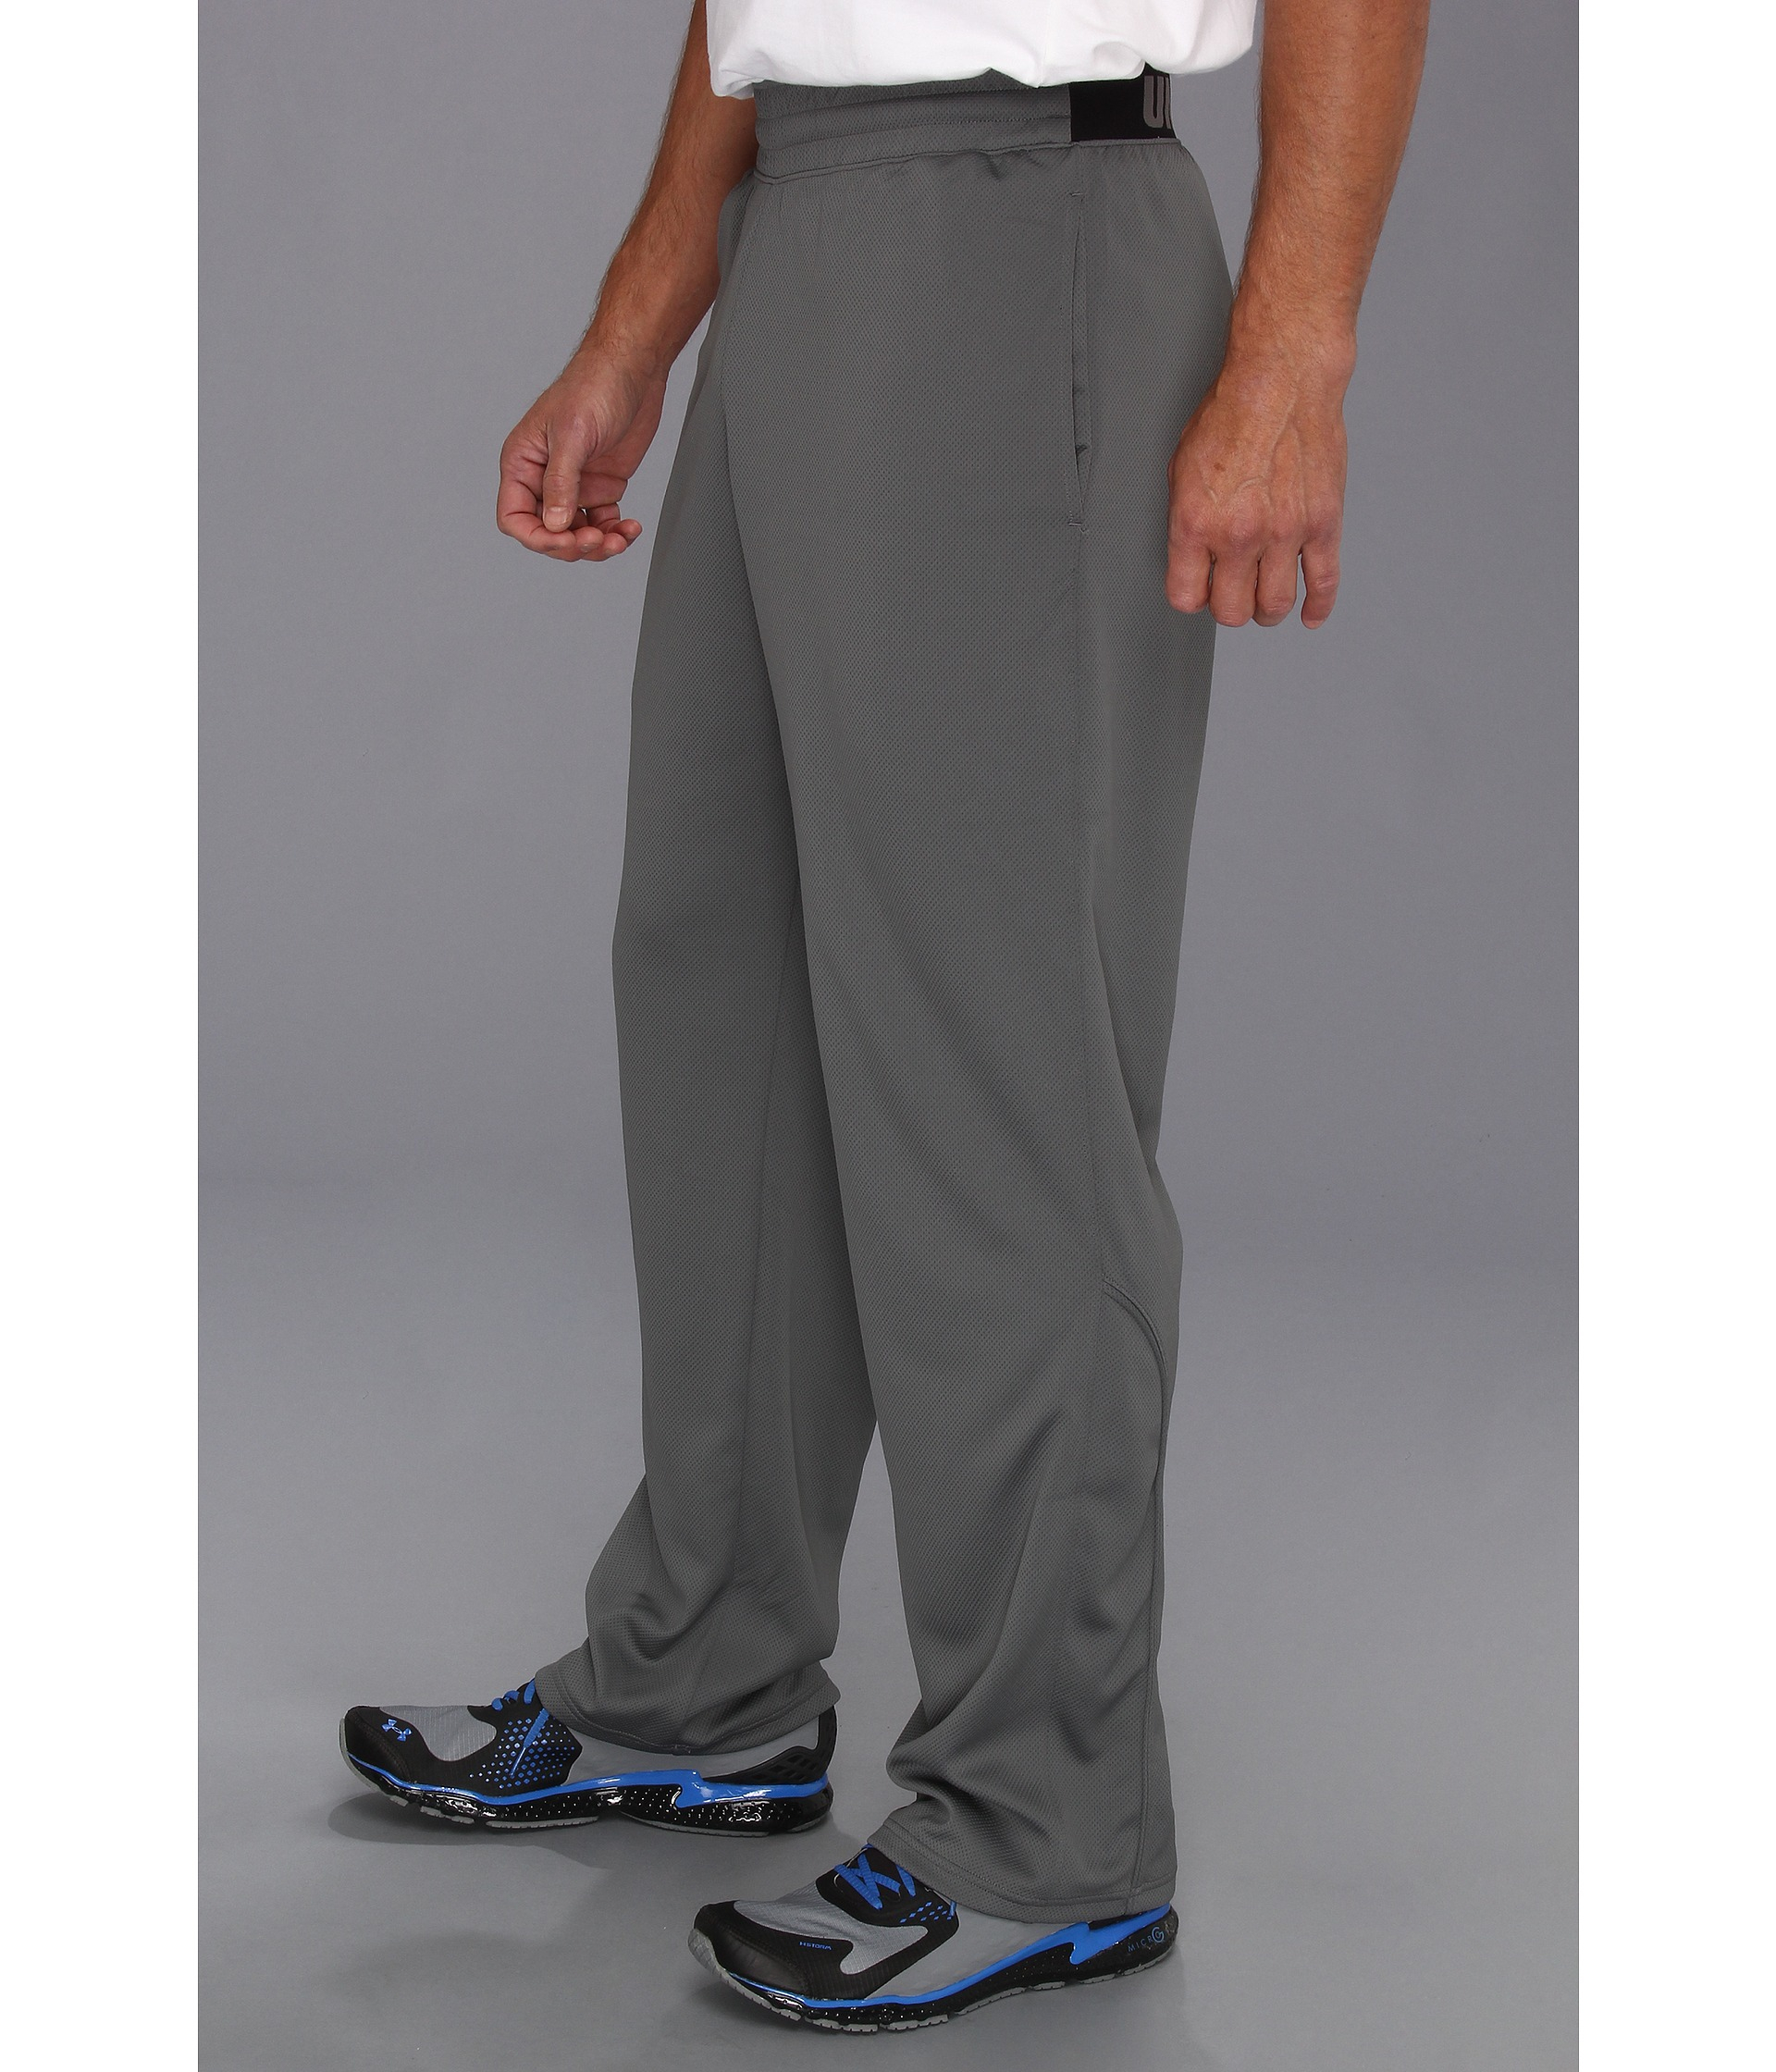 a651f908f78 Under Armour Ua Reflex Warm-up Pant in Gray for Men - Lyst